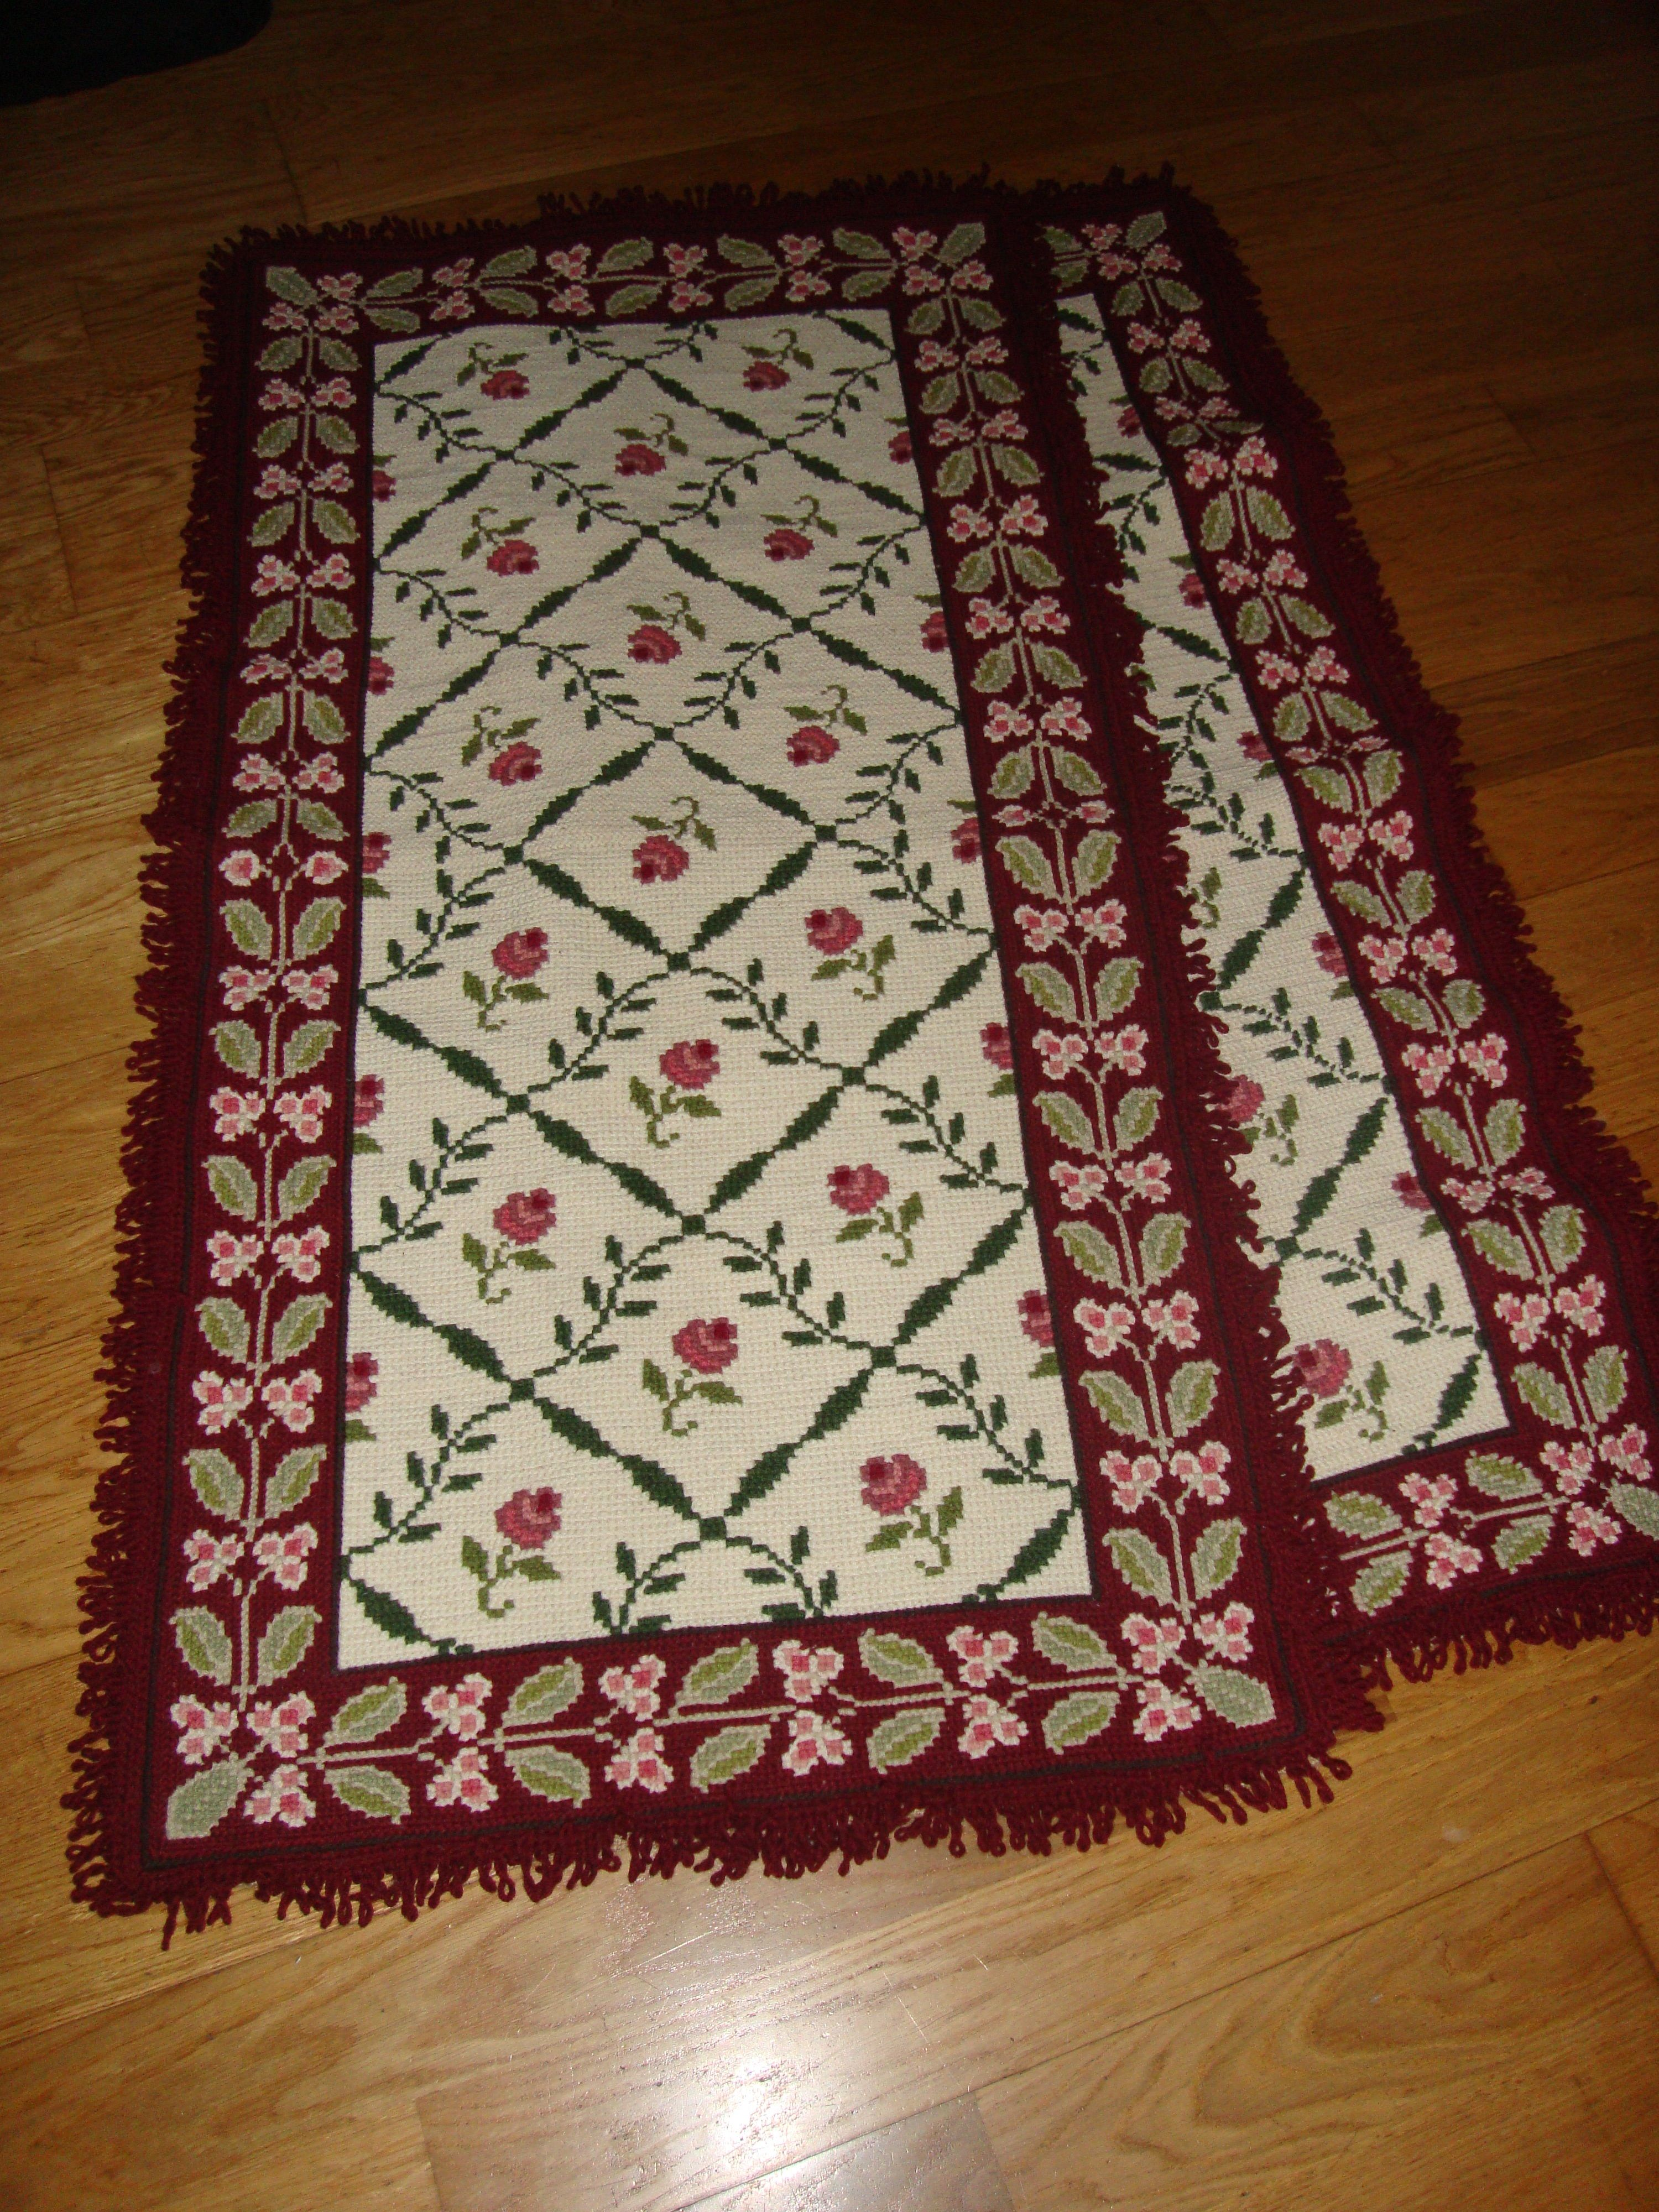 Arraiolos Rug For Bedroom Size Can Be Changed Larger Tapetes De Arraiolos